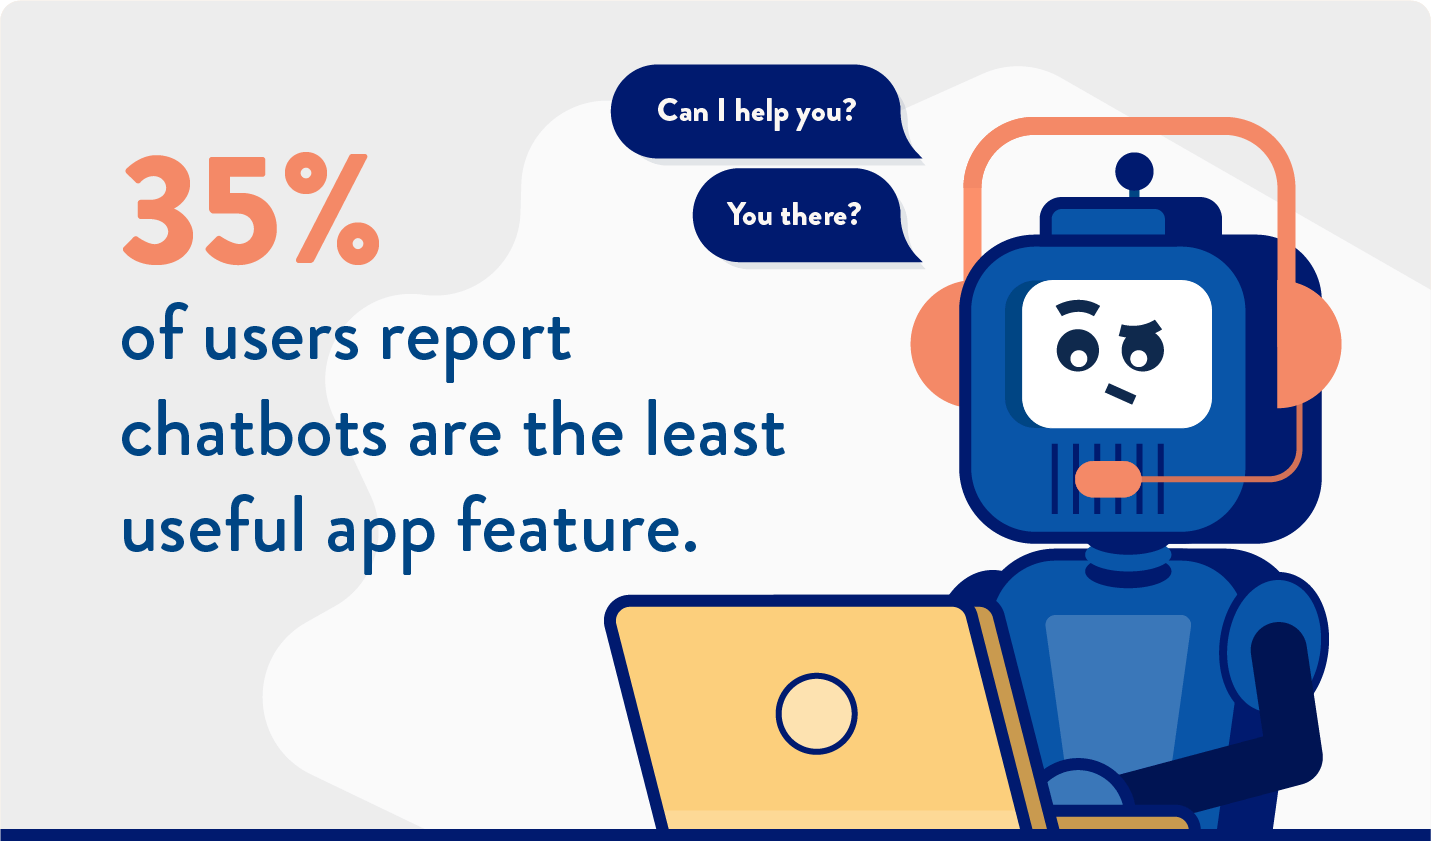 chatbots the least useful app feature reported by Americans in a survey